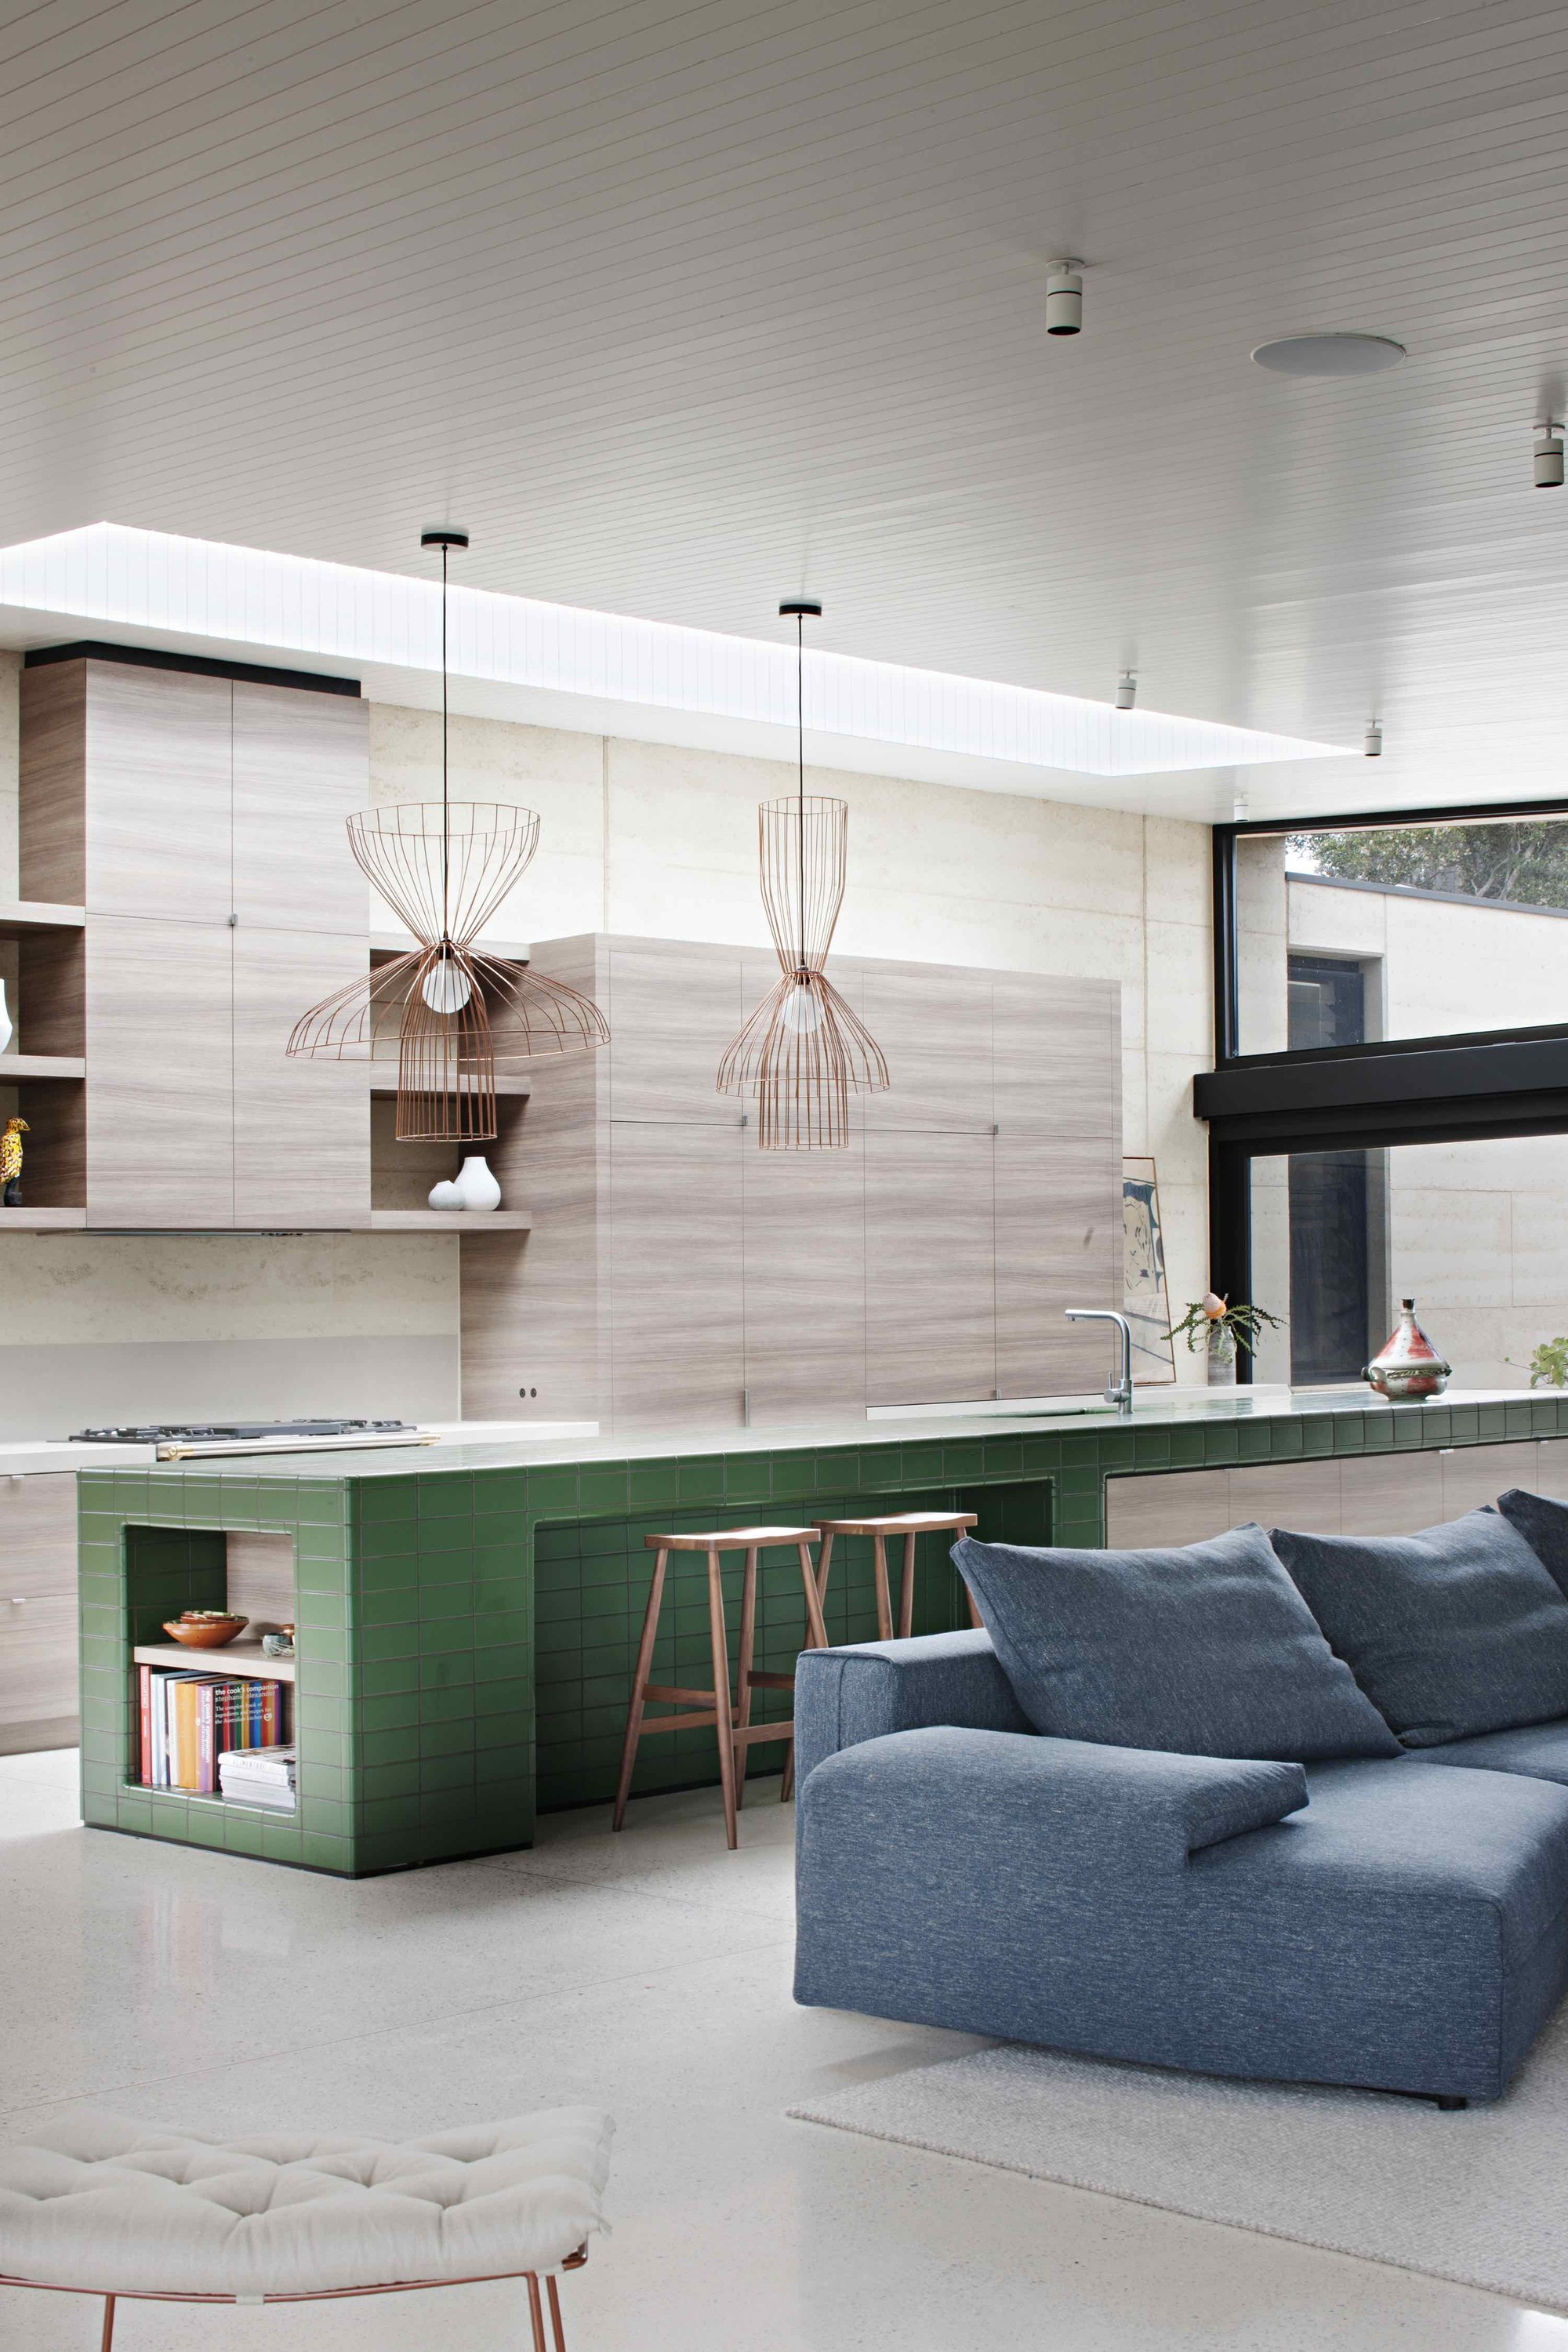 Layer House Robson Rak Architects And Interior Designers